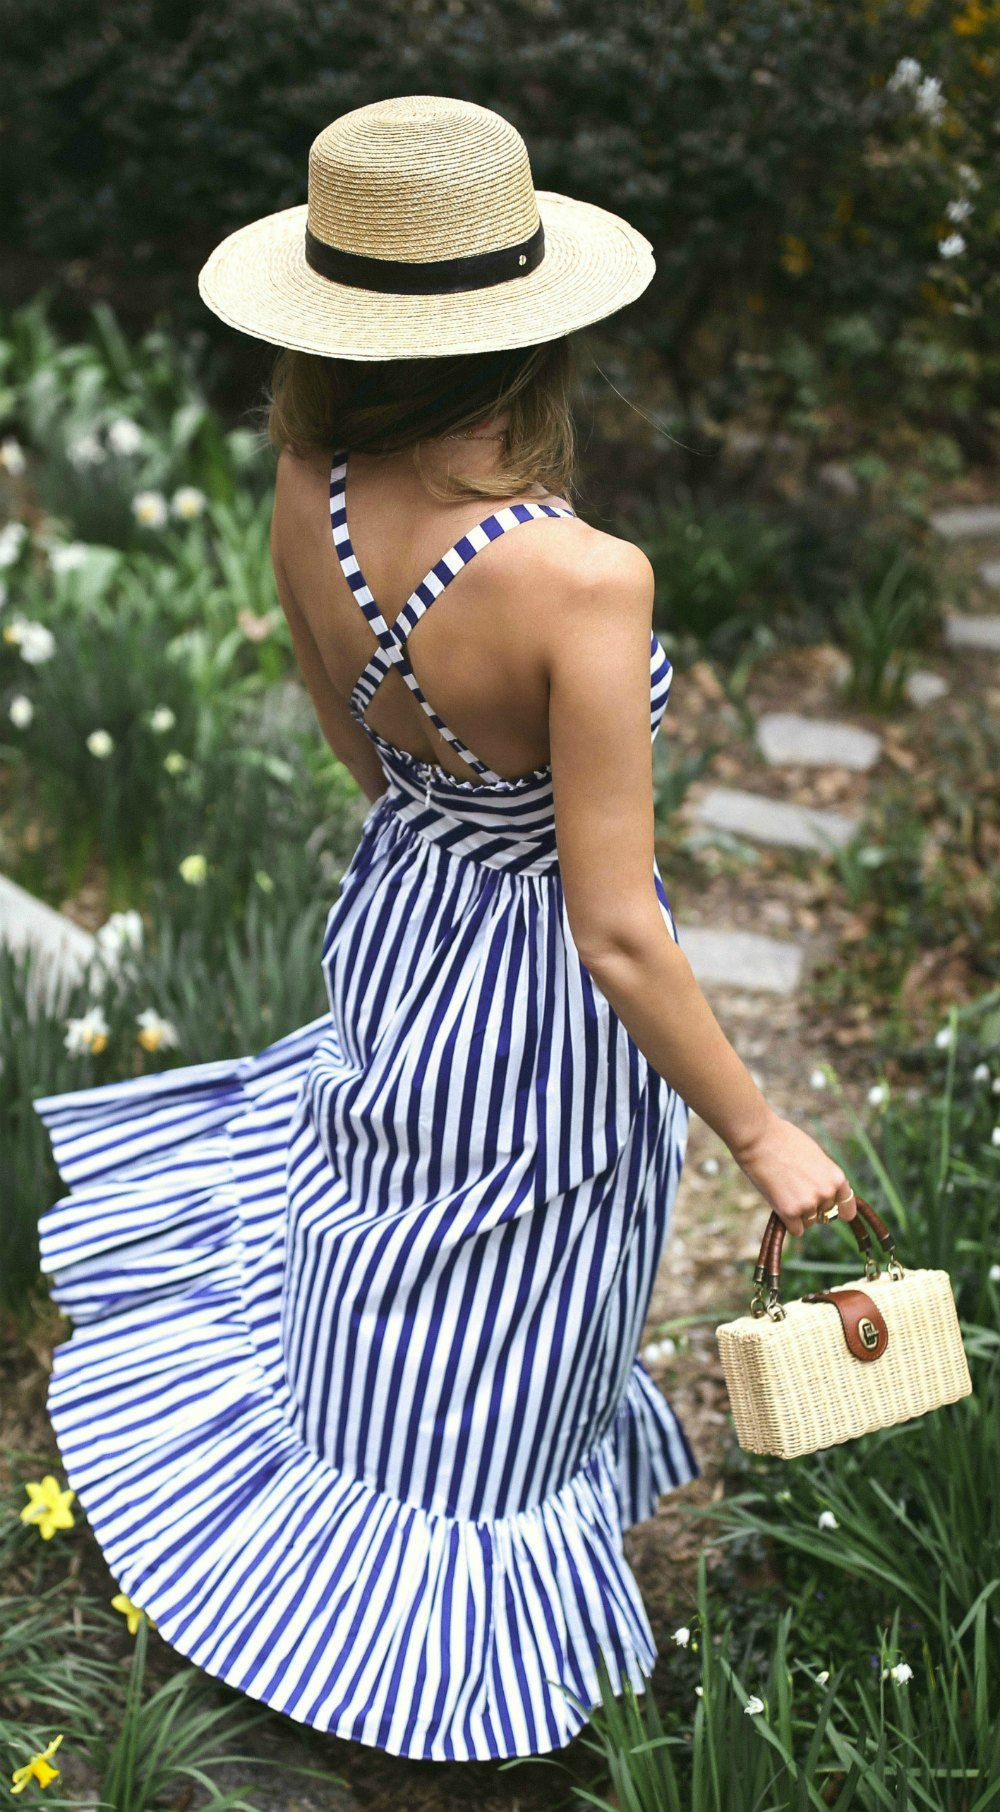 30 Dresses In 30 Days What To Wear To A Picnic Navy And White Stripe Maxi Dress Embroidered Navy Slides S Fashion Long Dress Outfits Striped Dress Summer [ 1812 x 1000 Pixel ]